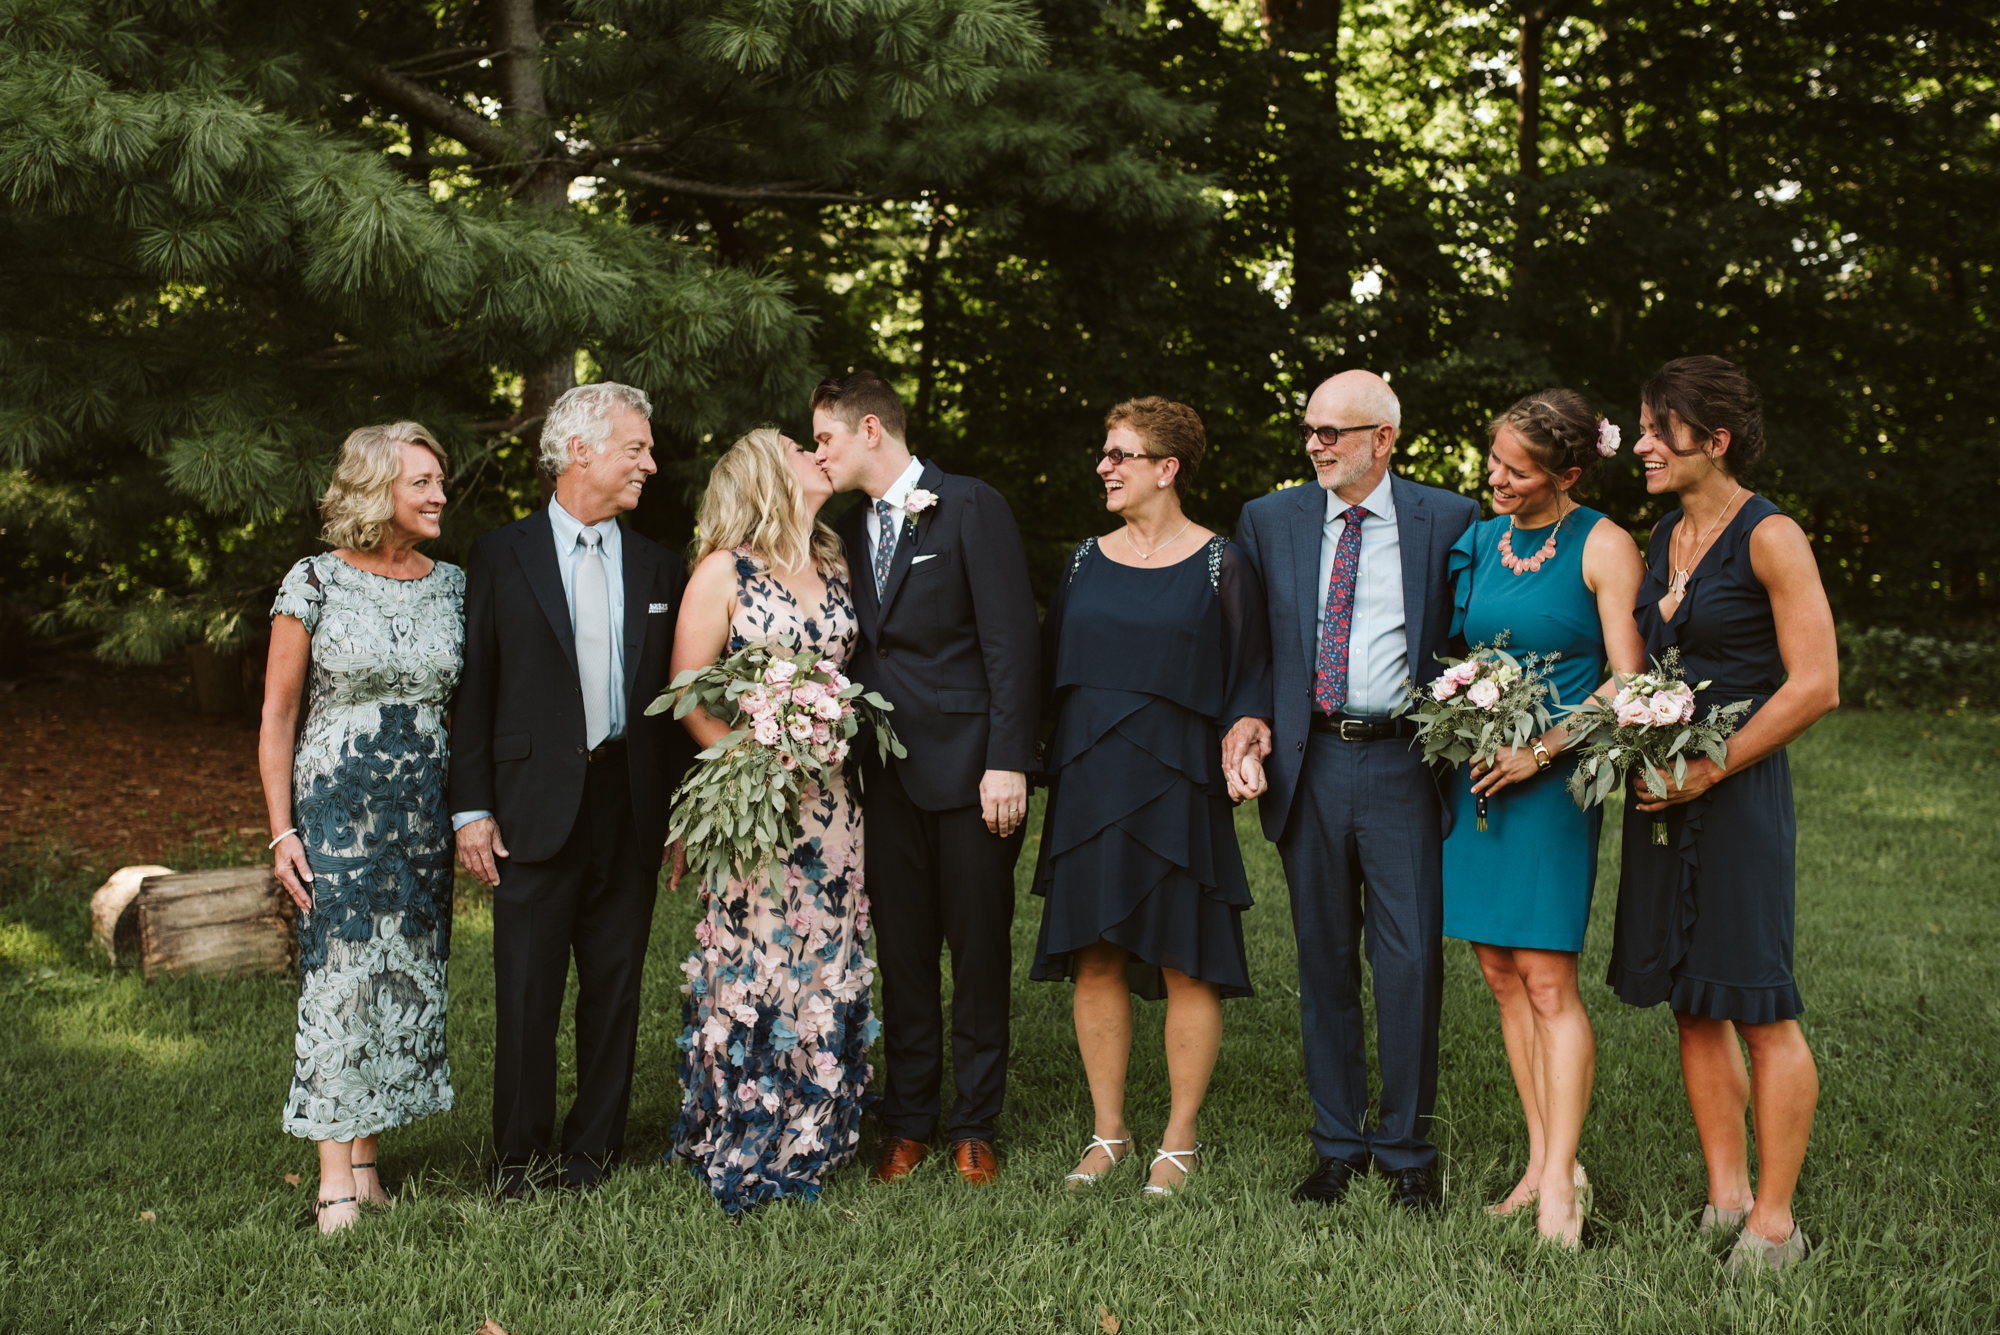 Pop-up Ceremony, Outdoor Wedding, Casual, Simple, Lake Roland, Baltimore, Maryland Wedding Photographer, Laid Back, DIY Flowers, September Wedding, Family Portrait